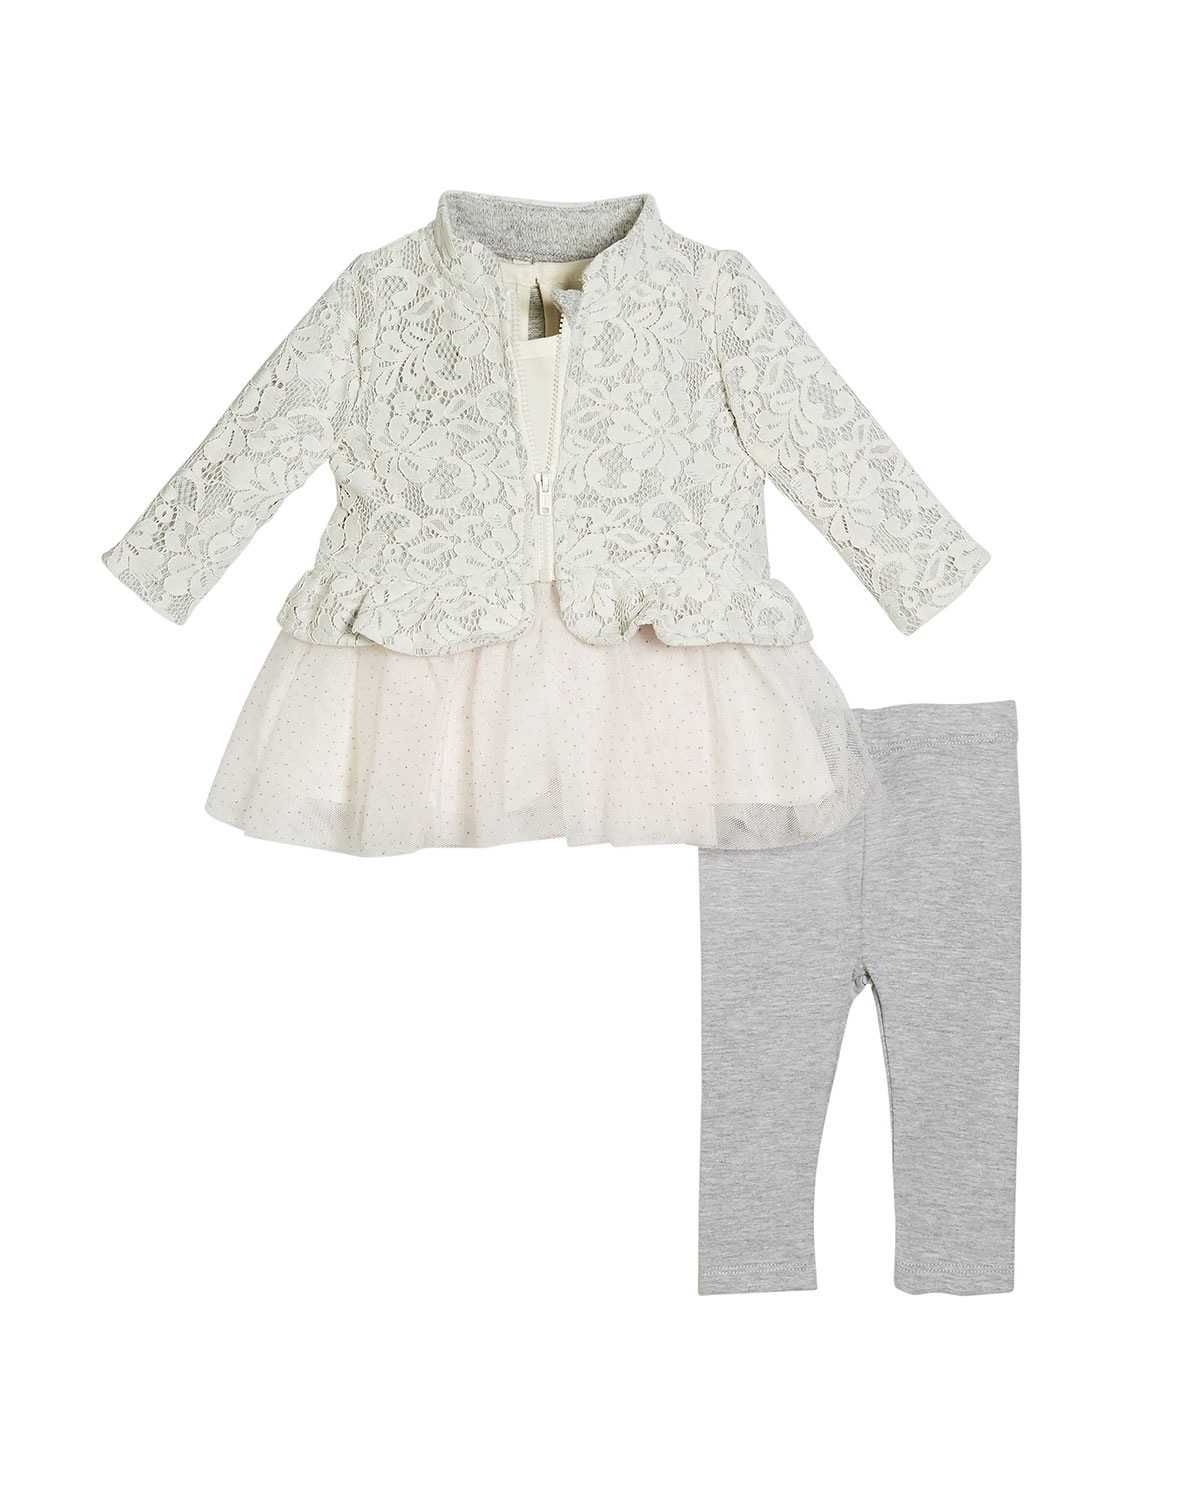 Lace Jacket, Skirted Top & Knit Leggings, Size 3-24 Months